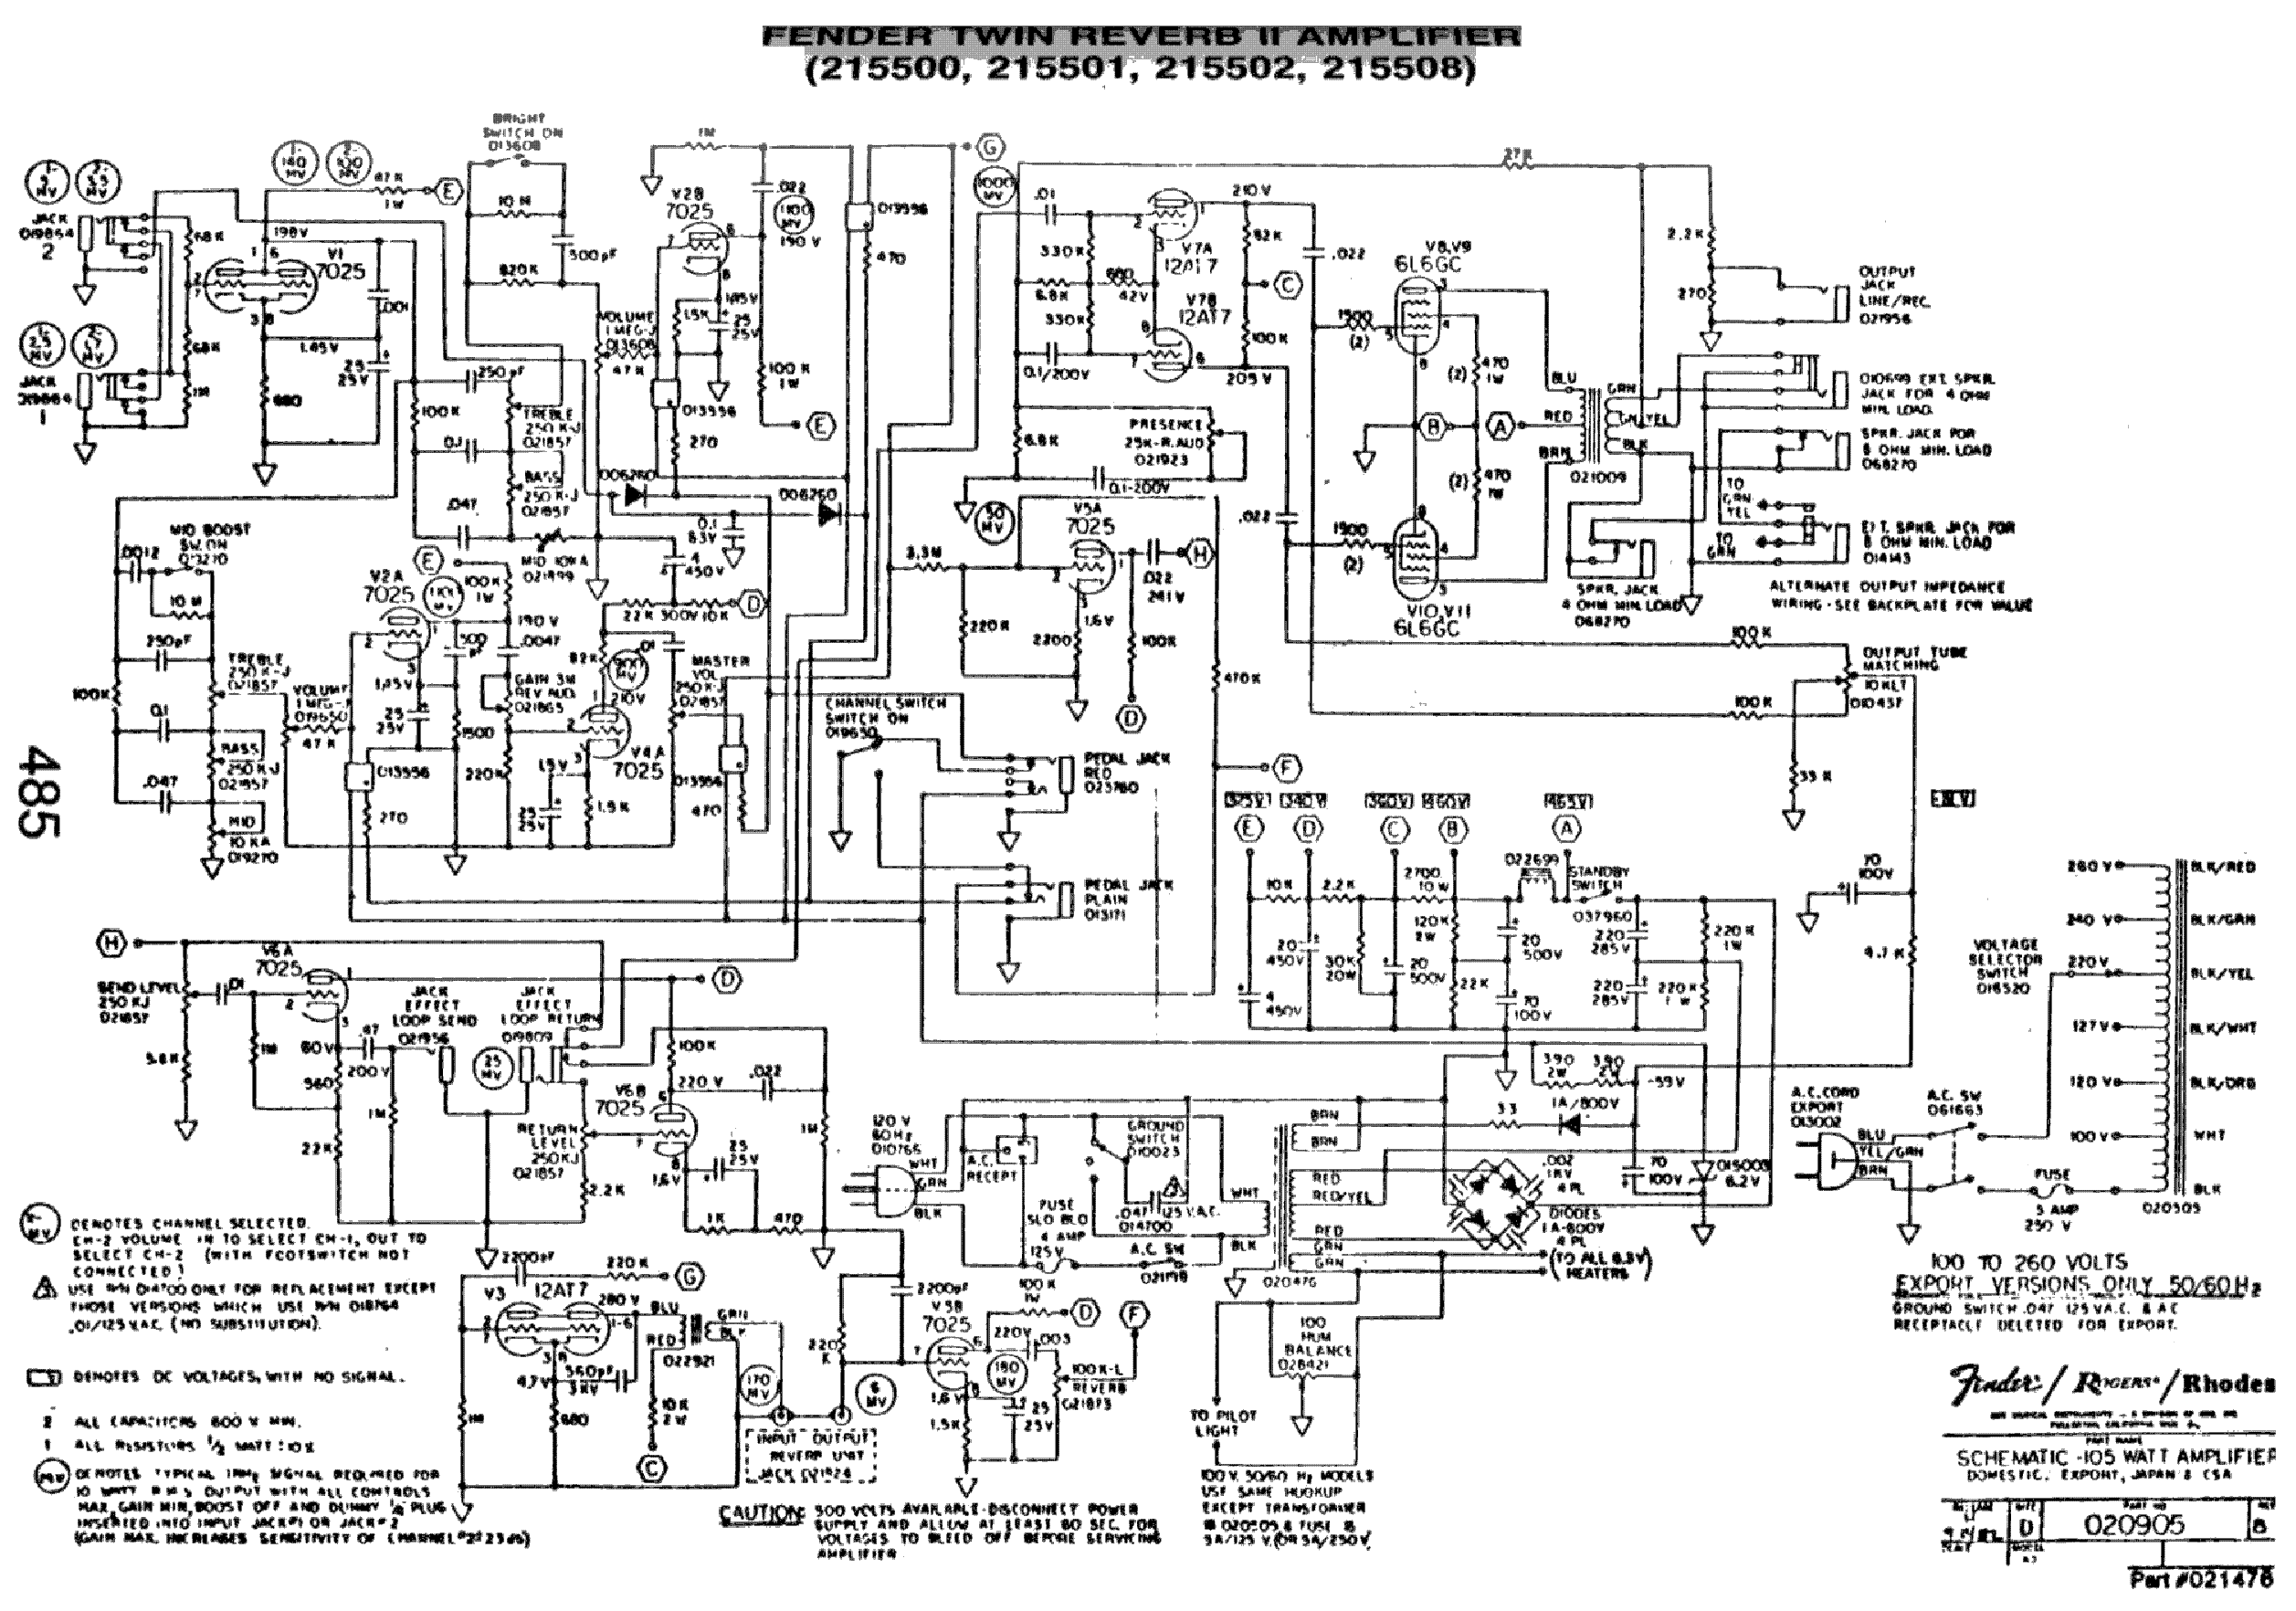 813 Tube Lifier Schematic besides Kindle Fire Reset On Diagram furthermore Xbox 360 Controller Schematic additionally Ab 763 Schematic Fender Twin Reverb besides Ipod Speaker Wiring Diagram. on wiring diagram for lifier